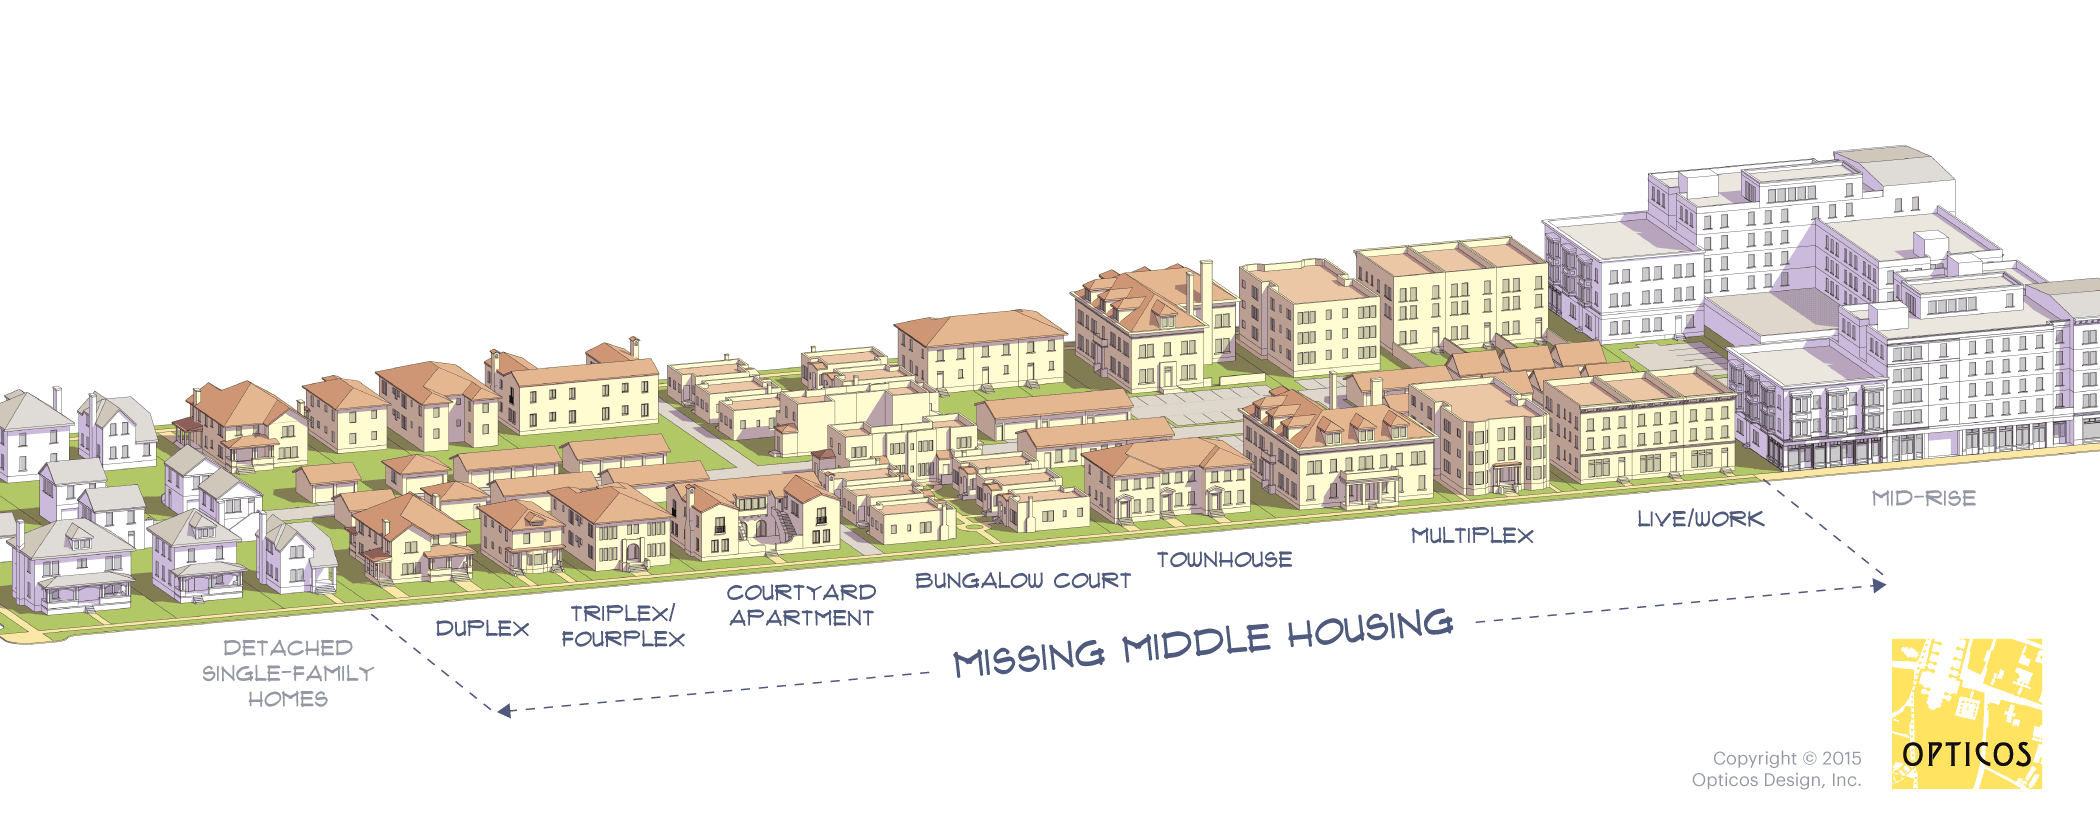 missingmiddlehousing_diagram01